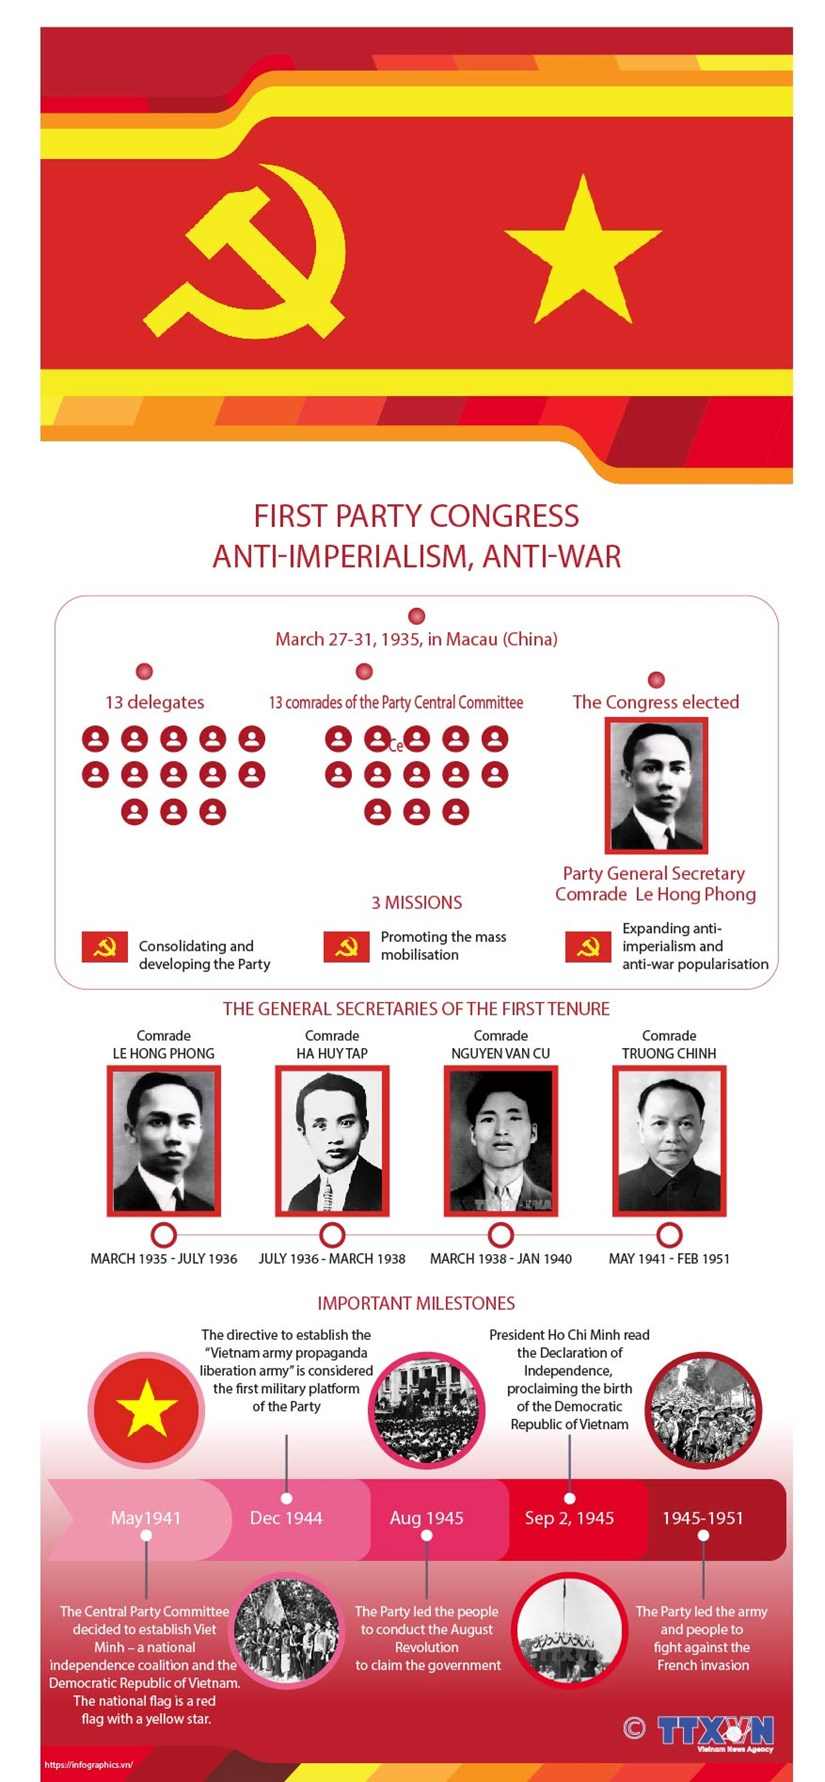 First Party Congress: anti-imperialism, anti-war hinh anh 1